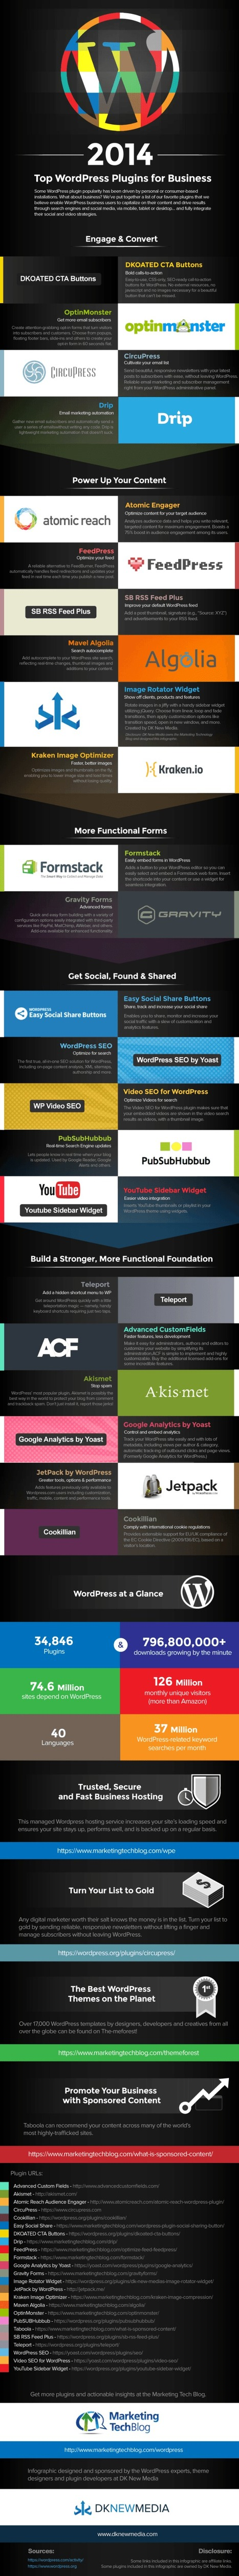 Best WordPress Biz Plugins 2015 [Infographics] | Collaborative Revolution | Scoop.it